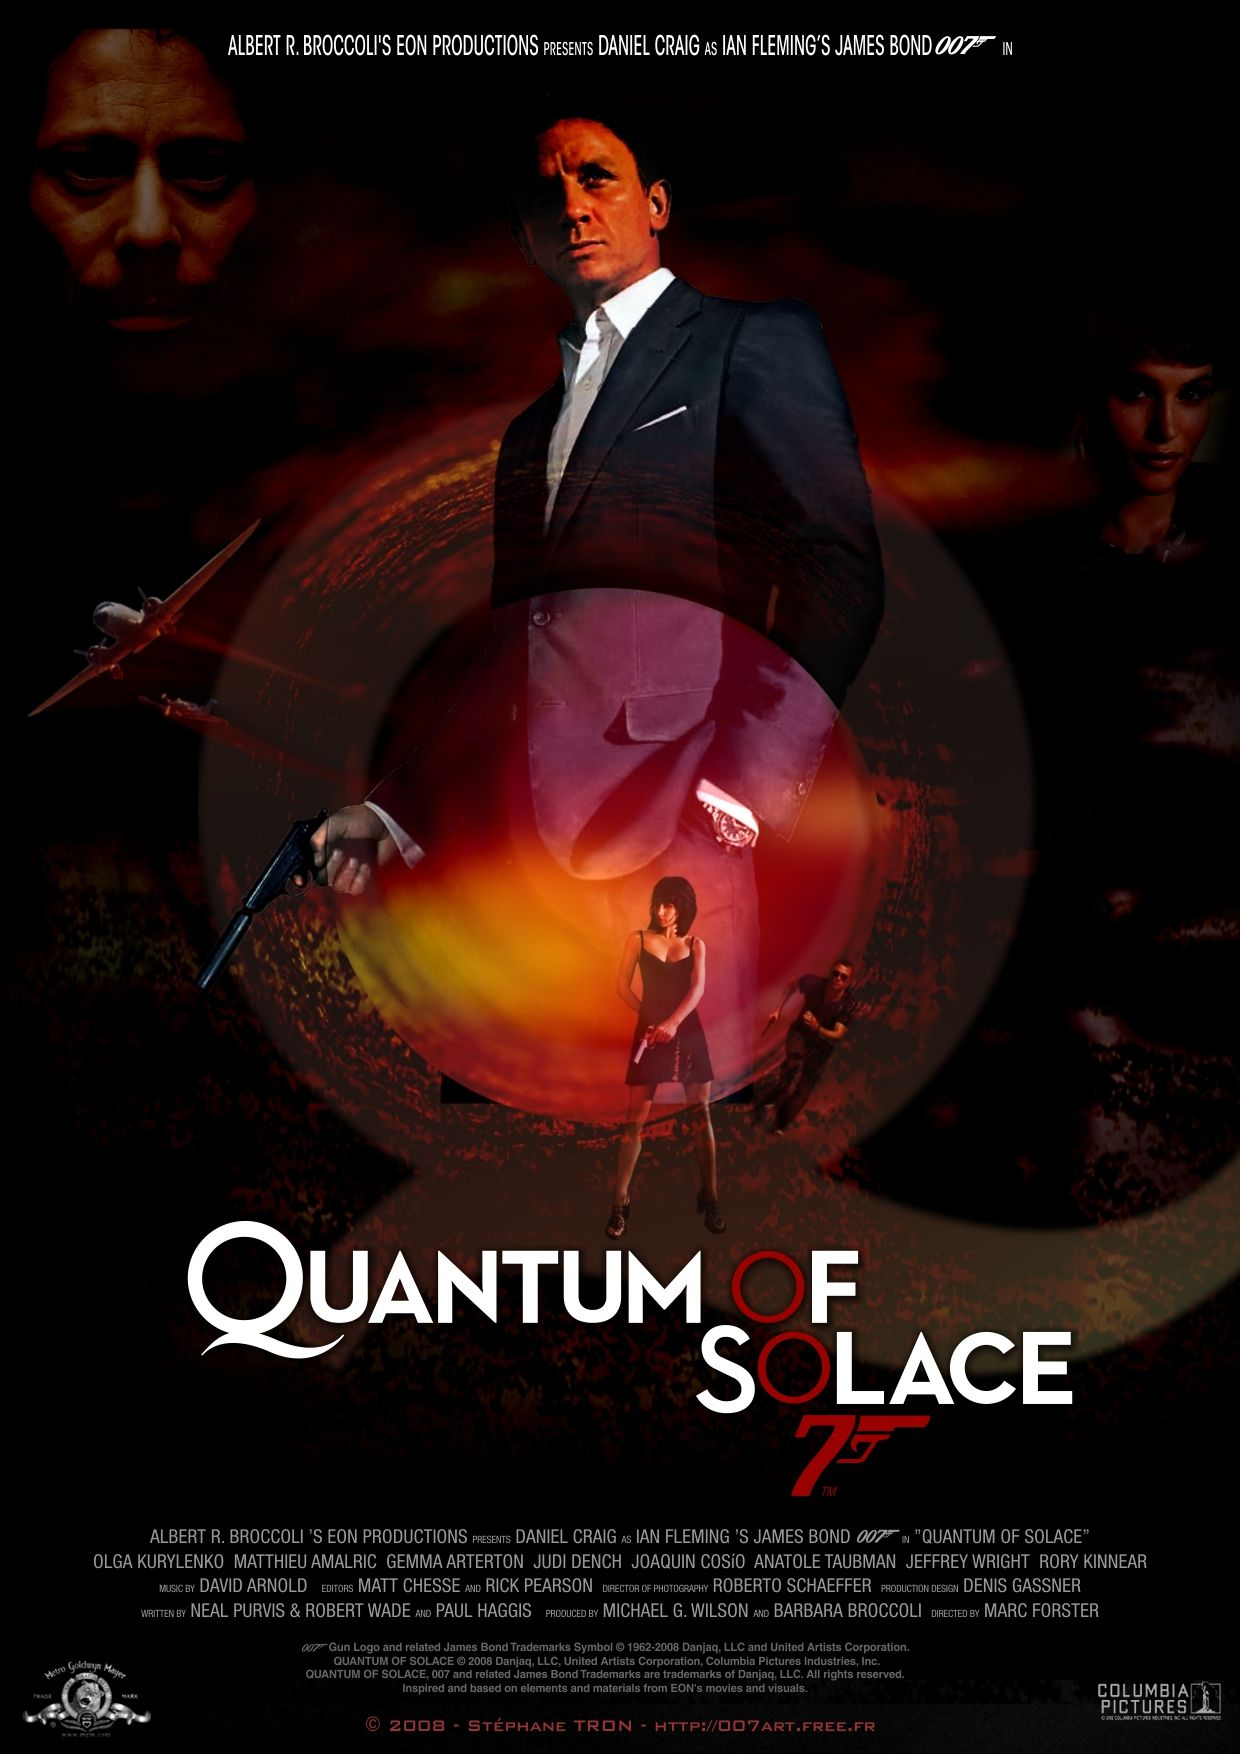 Quantum Of Solace Movie Poster 17 Bond Movies 007 James Bond